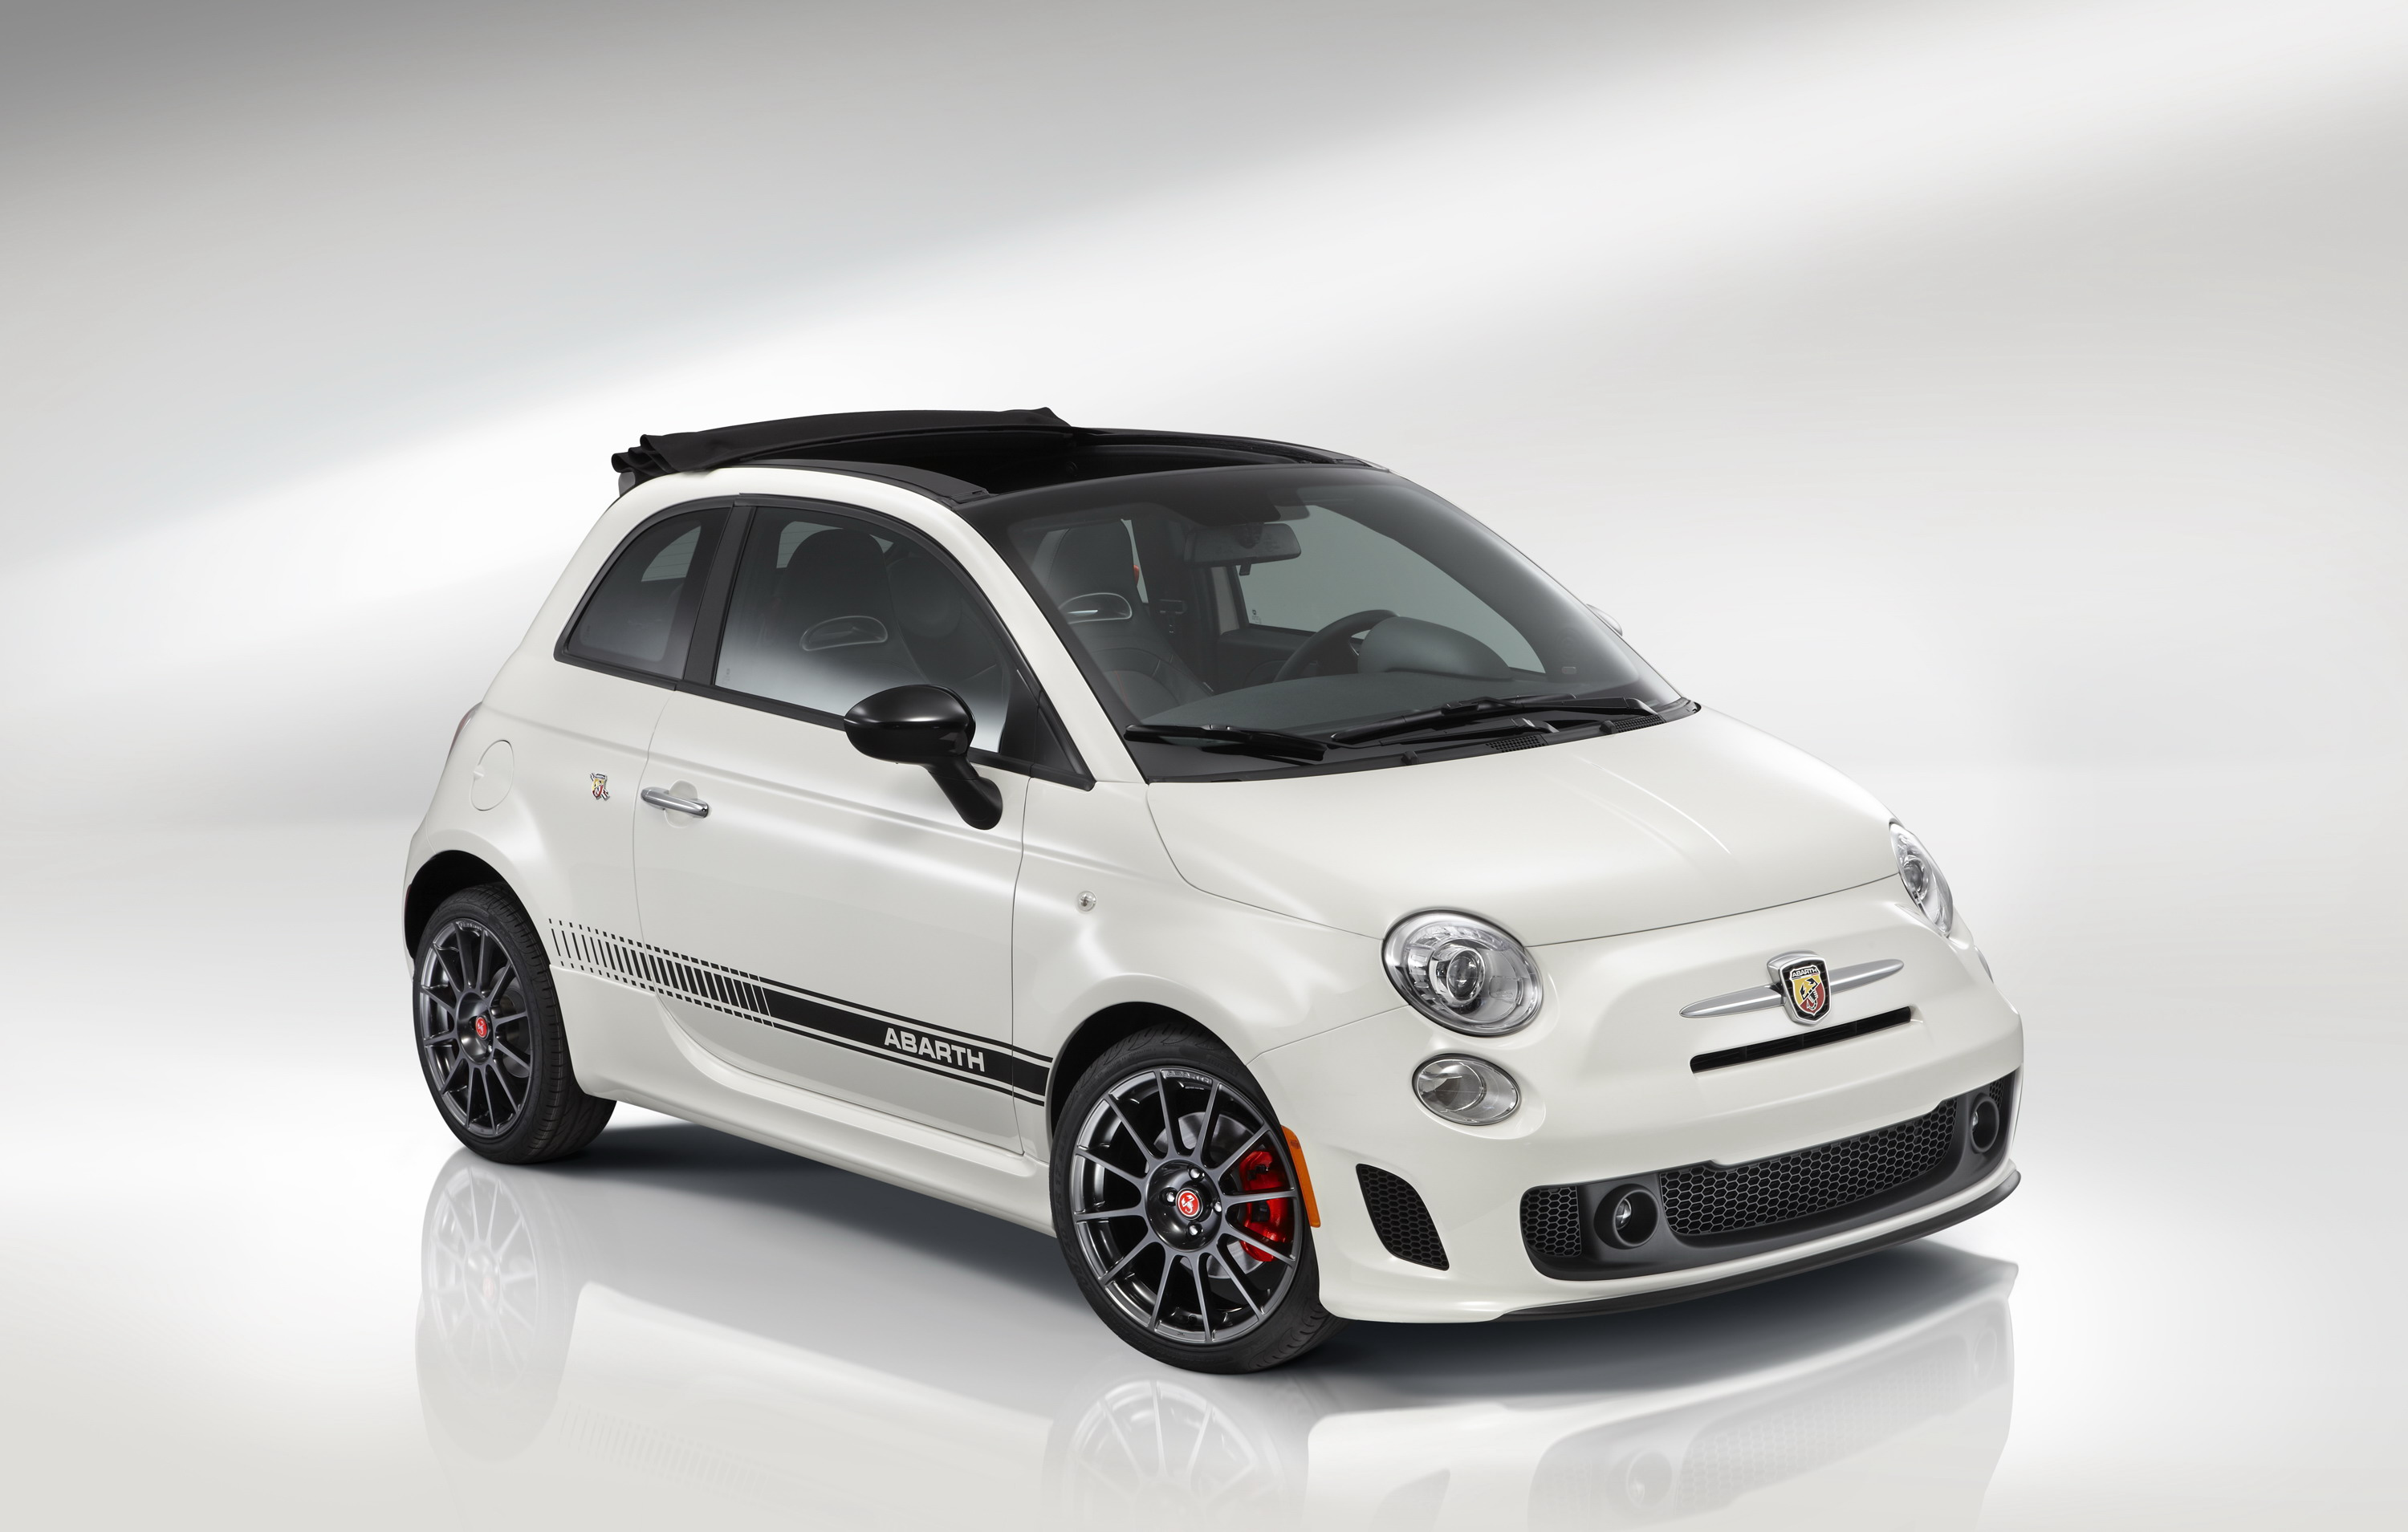 white ebay special arbath offer i abarth itm fiat esseesse to customers scale cast die model car pitwalk exclusive